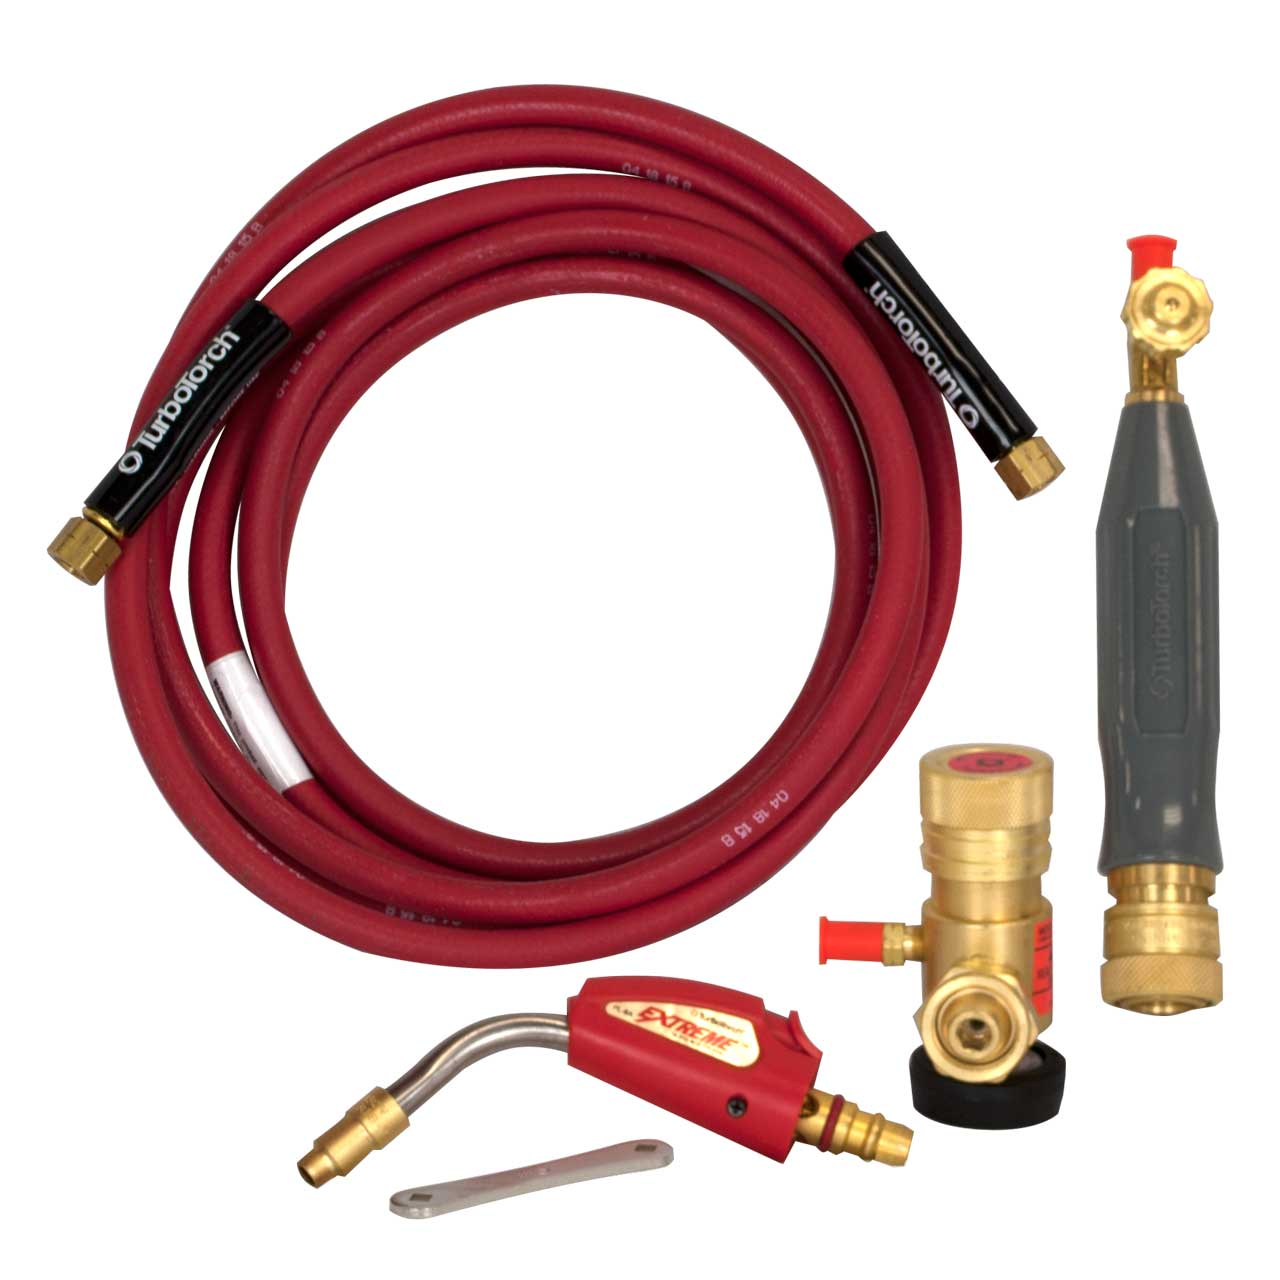 TurboTorch Pro-Line  Swirl Air Acetylene Kits - pl-8a dlx. b kit (15psi acety.)